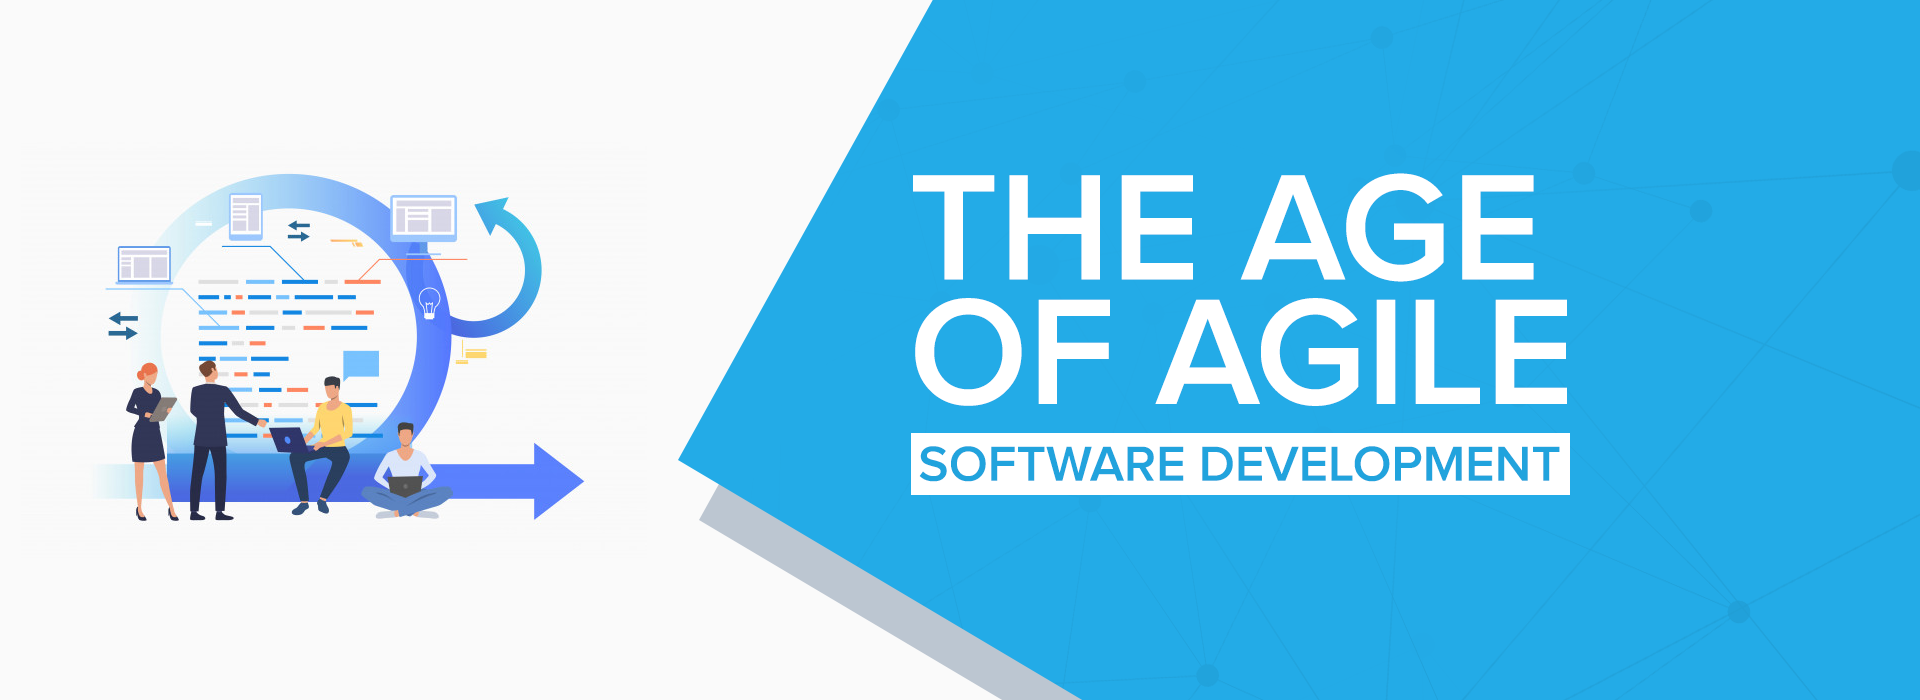 The-Age-of-Agile-Software-Development_